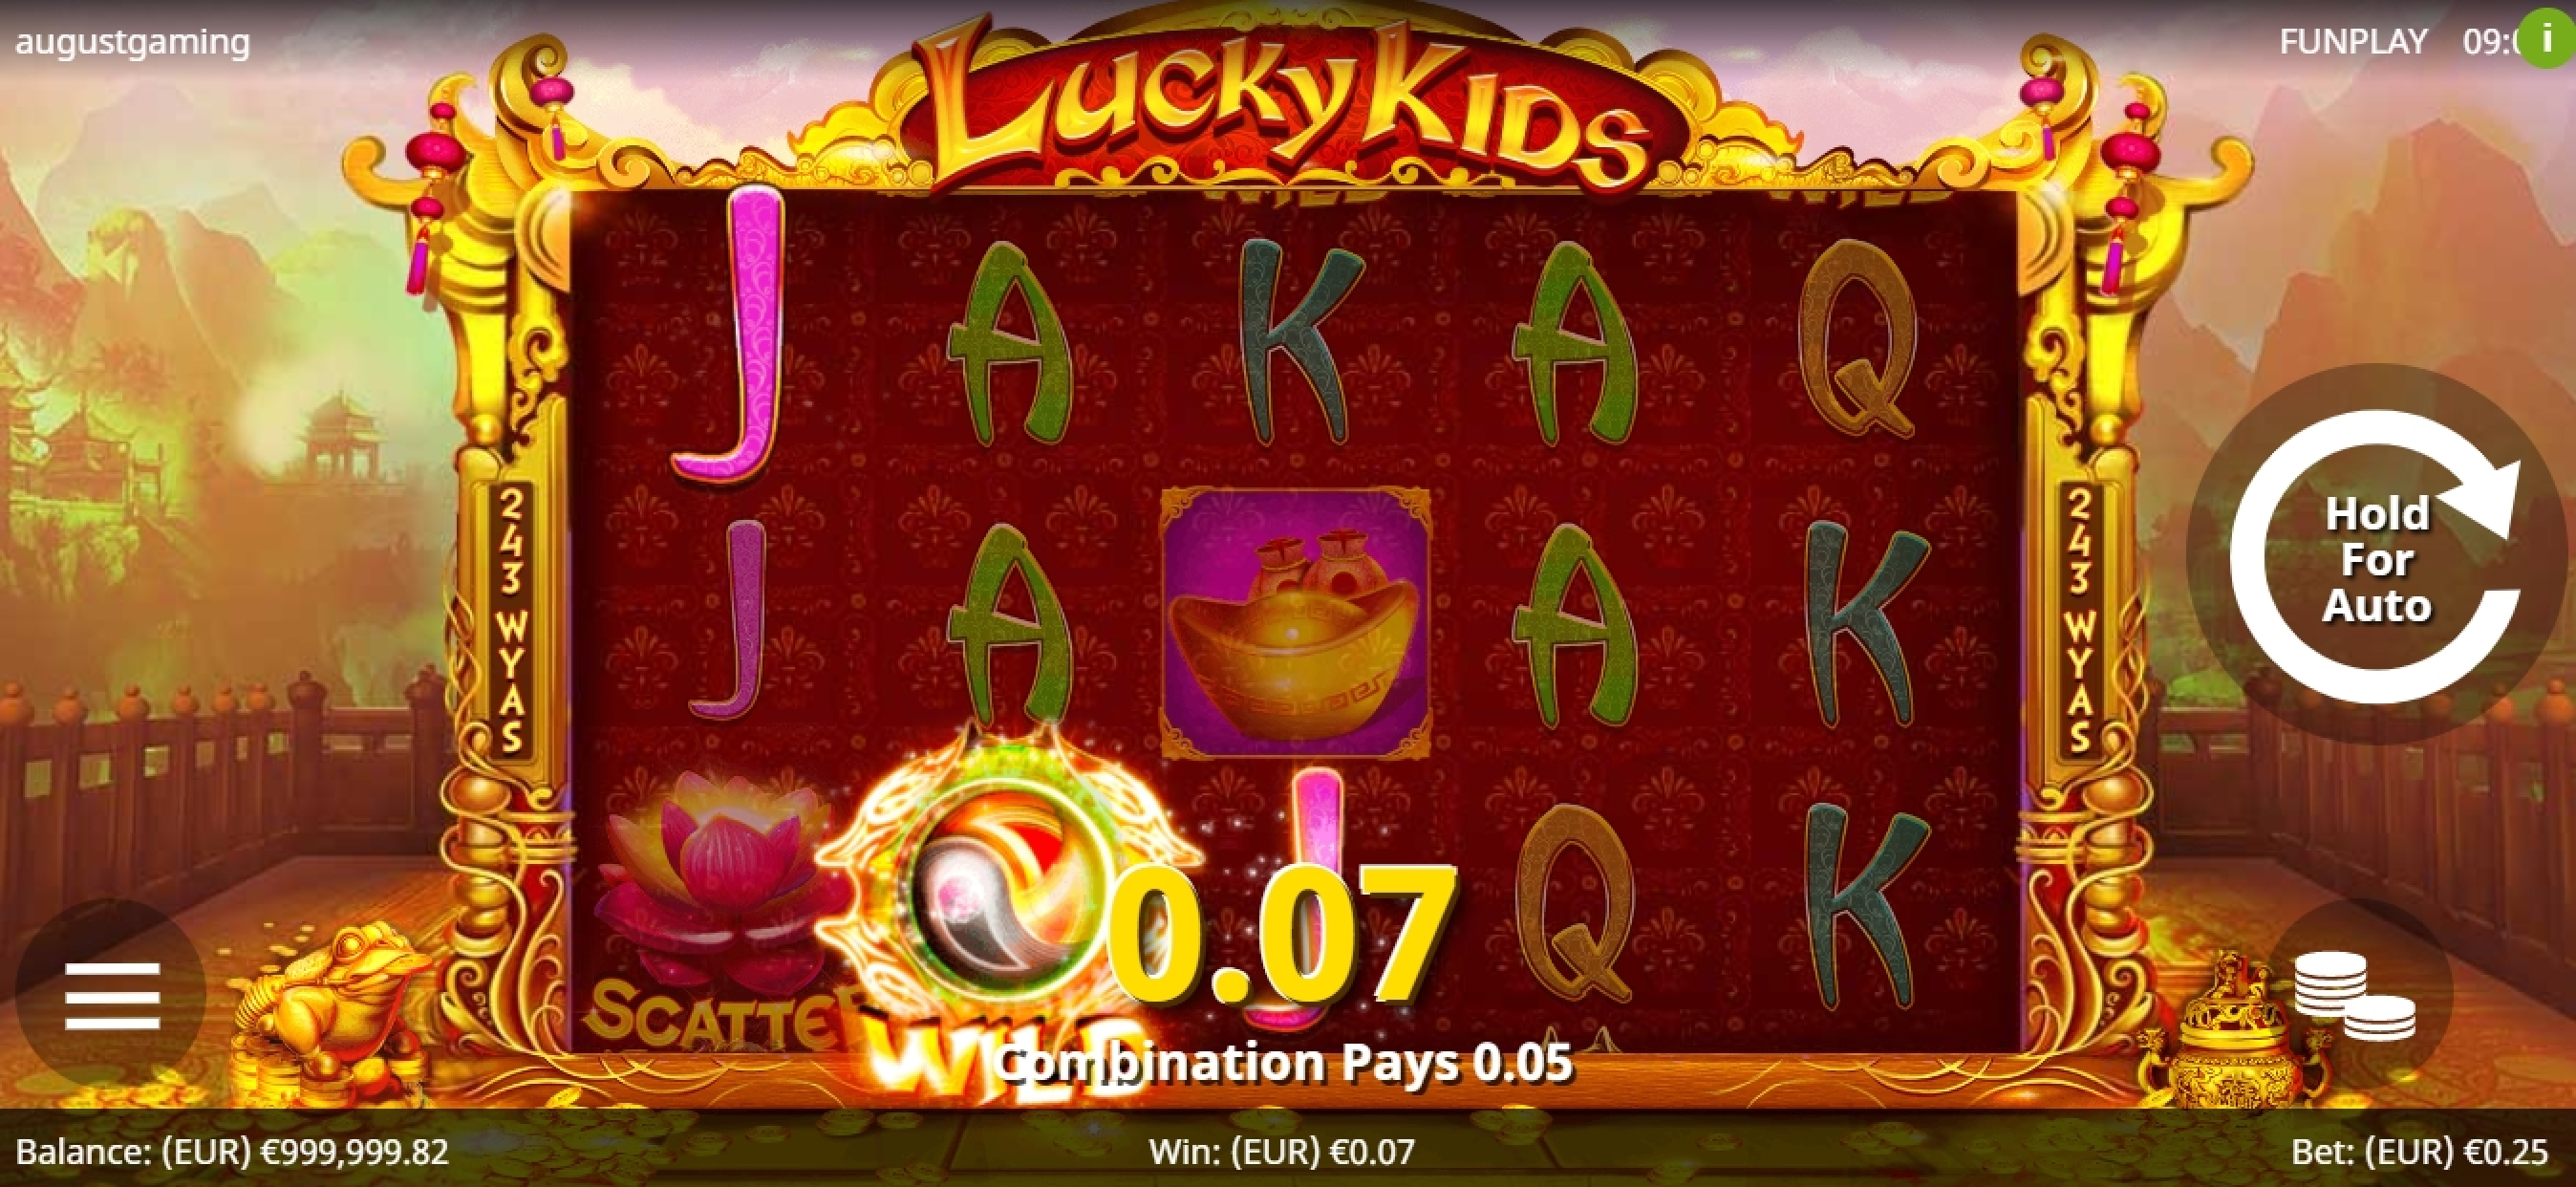 Win Money in Lucky Kids Free Slot Game by August Gaming